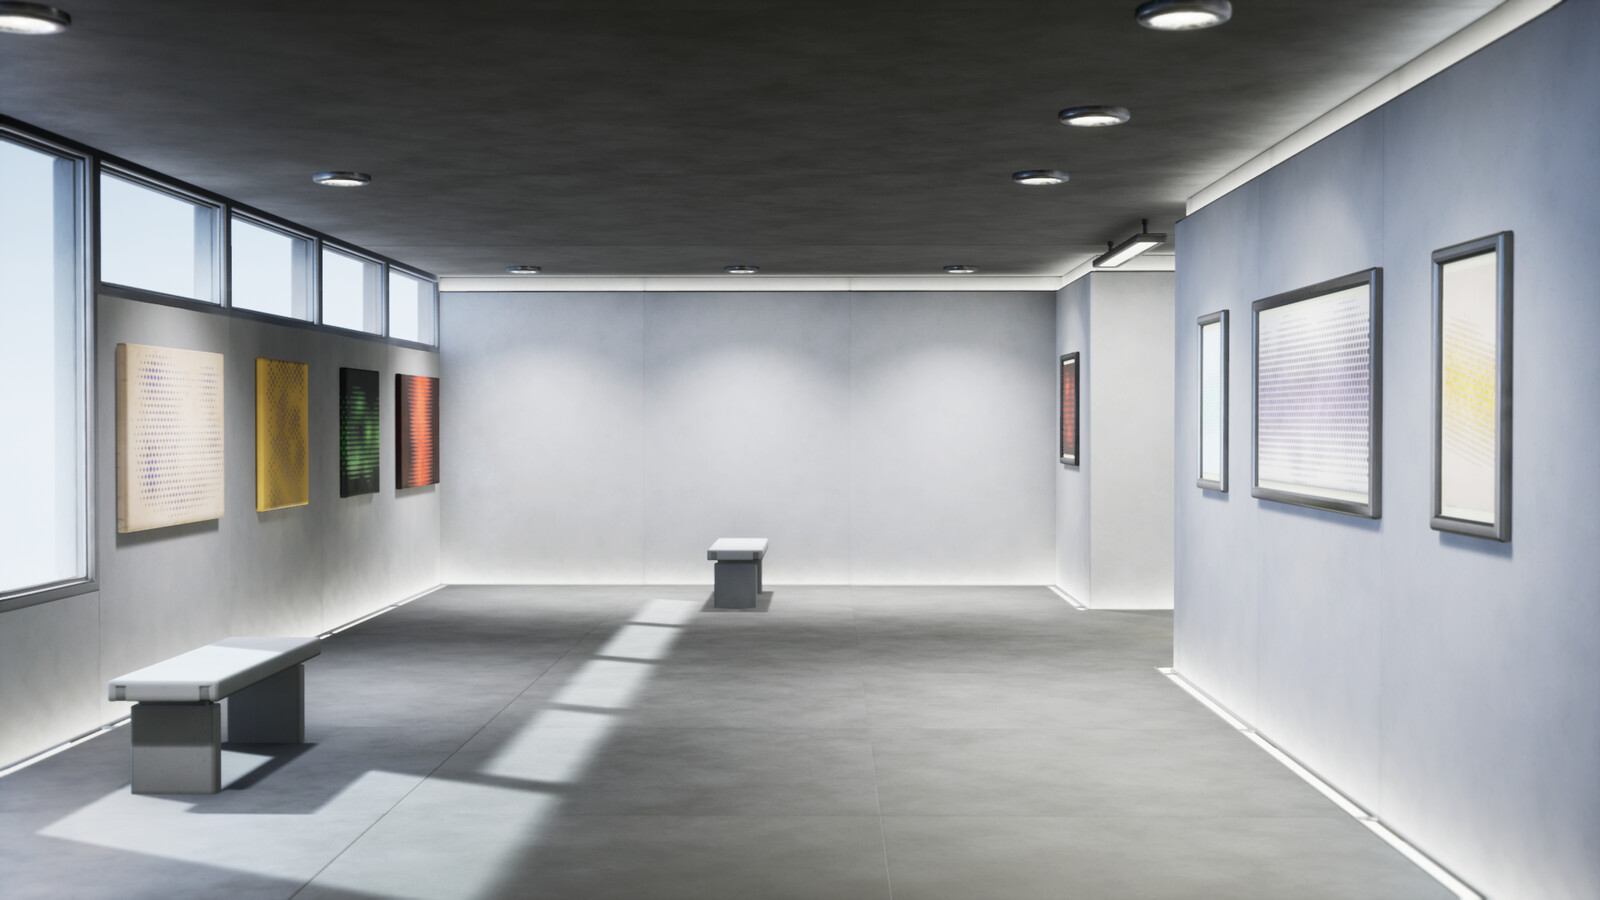 The gallery space in Unreal